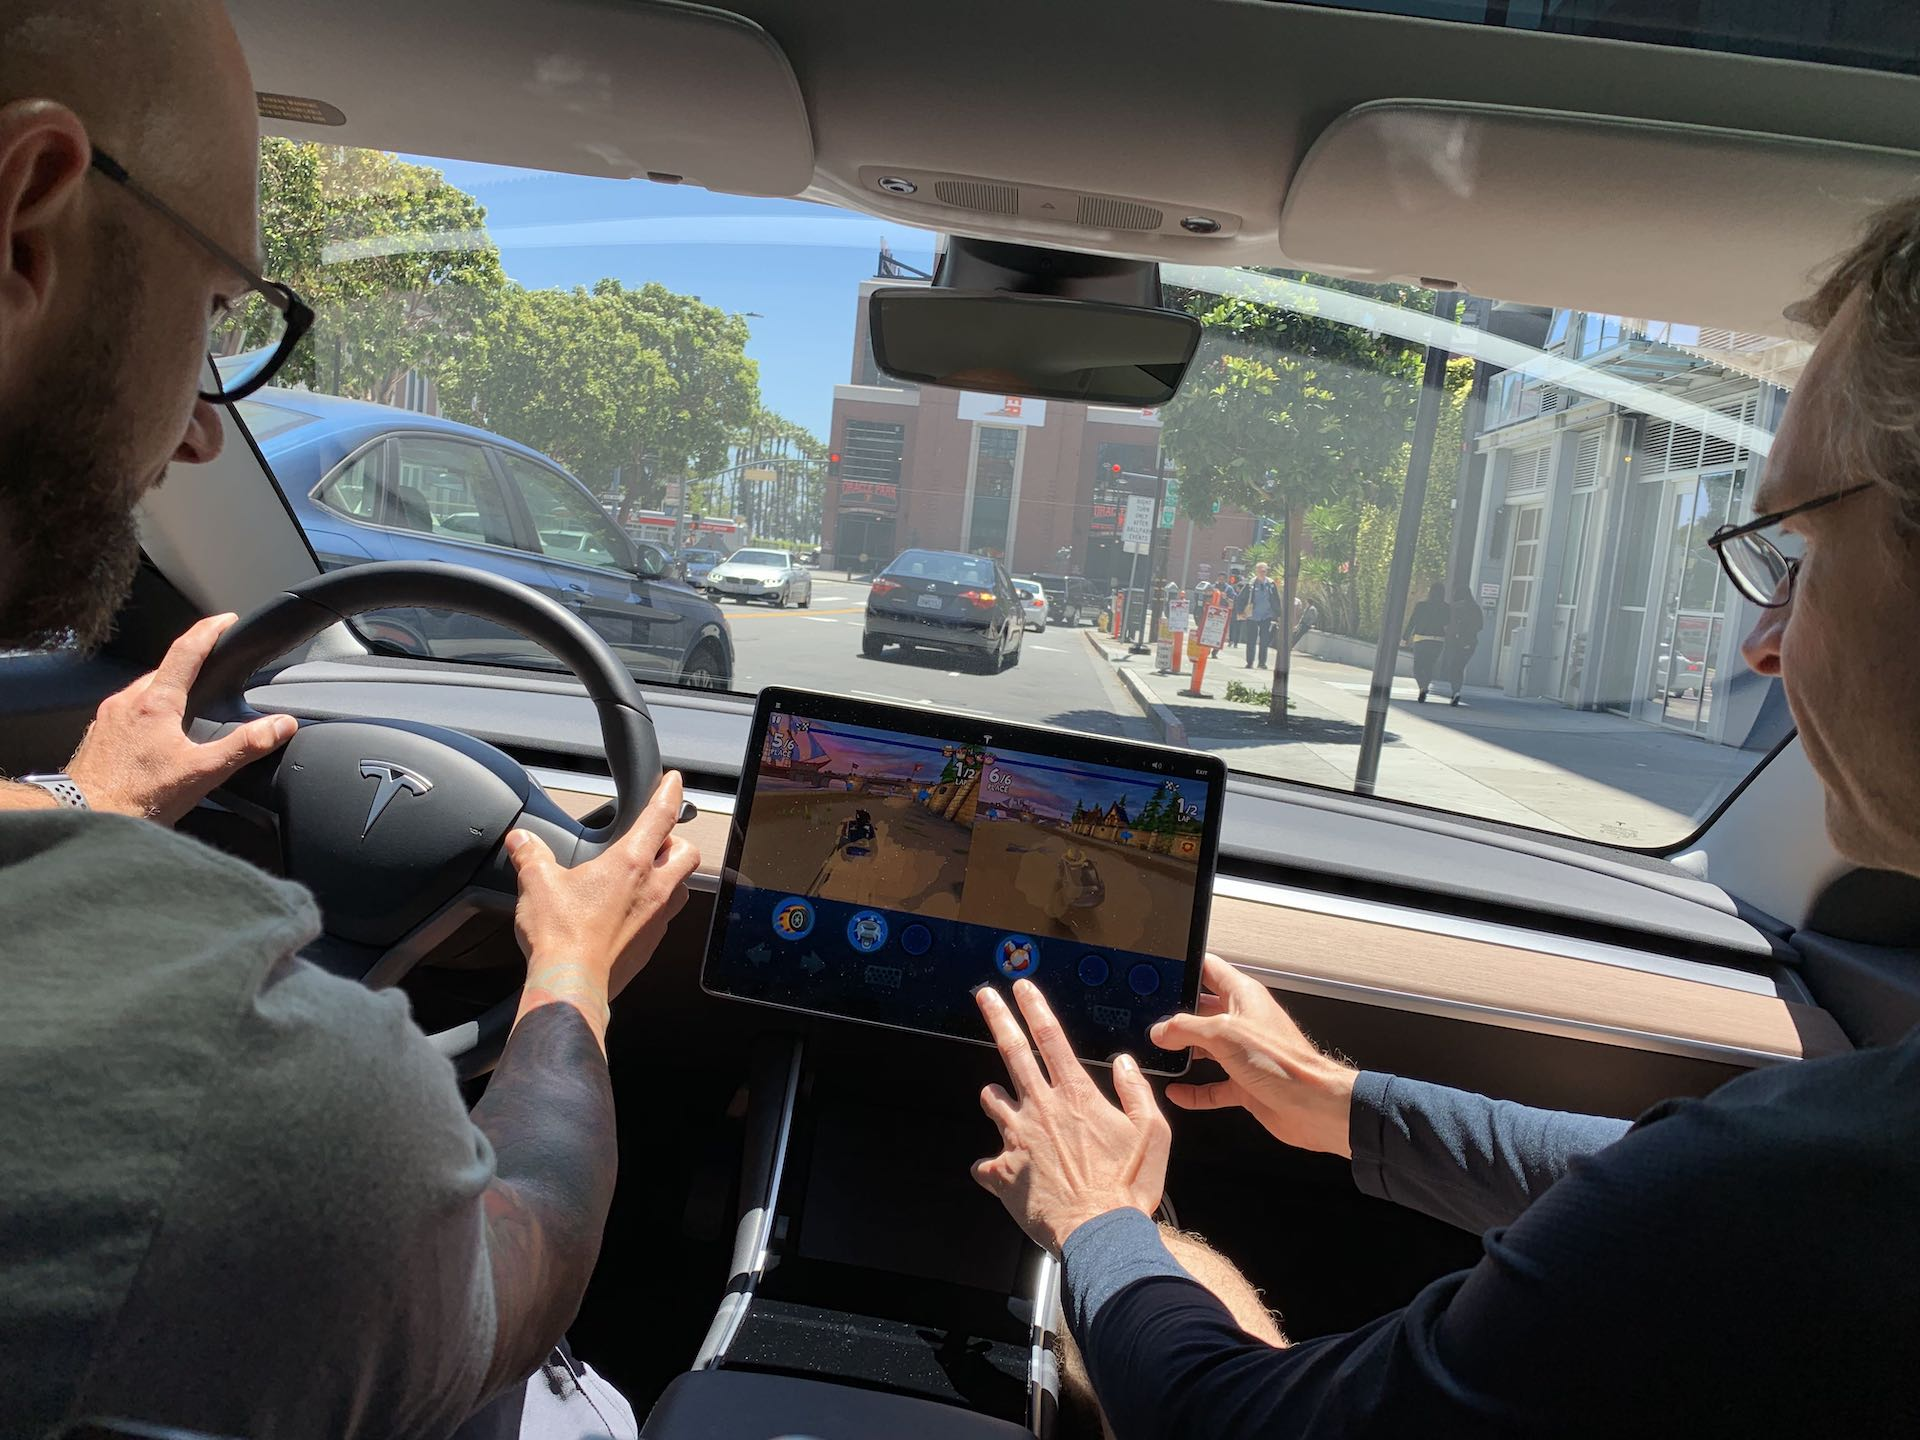 Tesla Arcade is priming us for the self-driving future, we